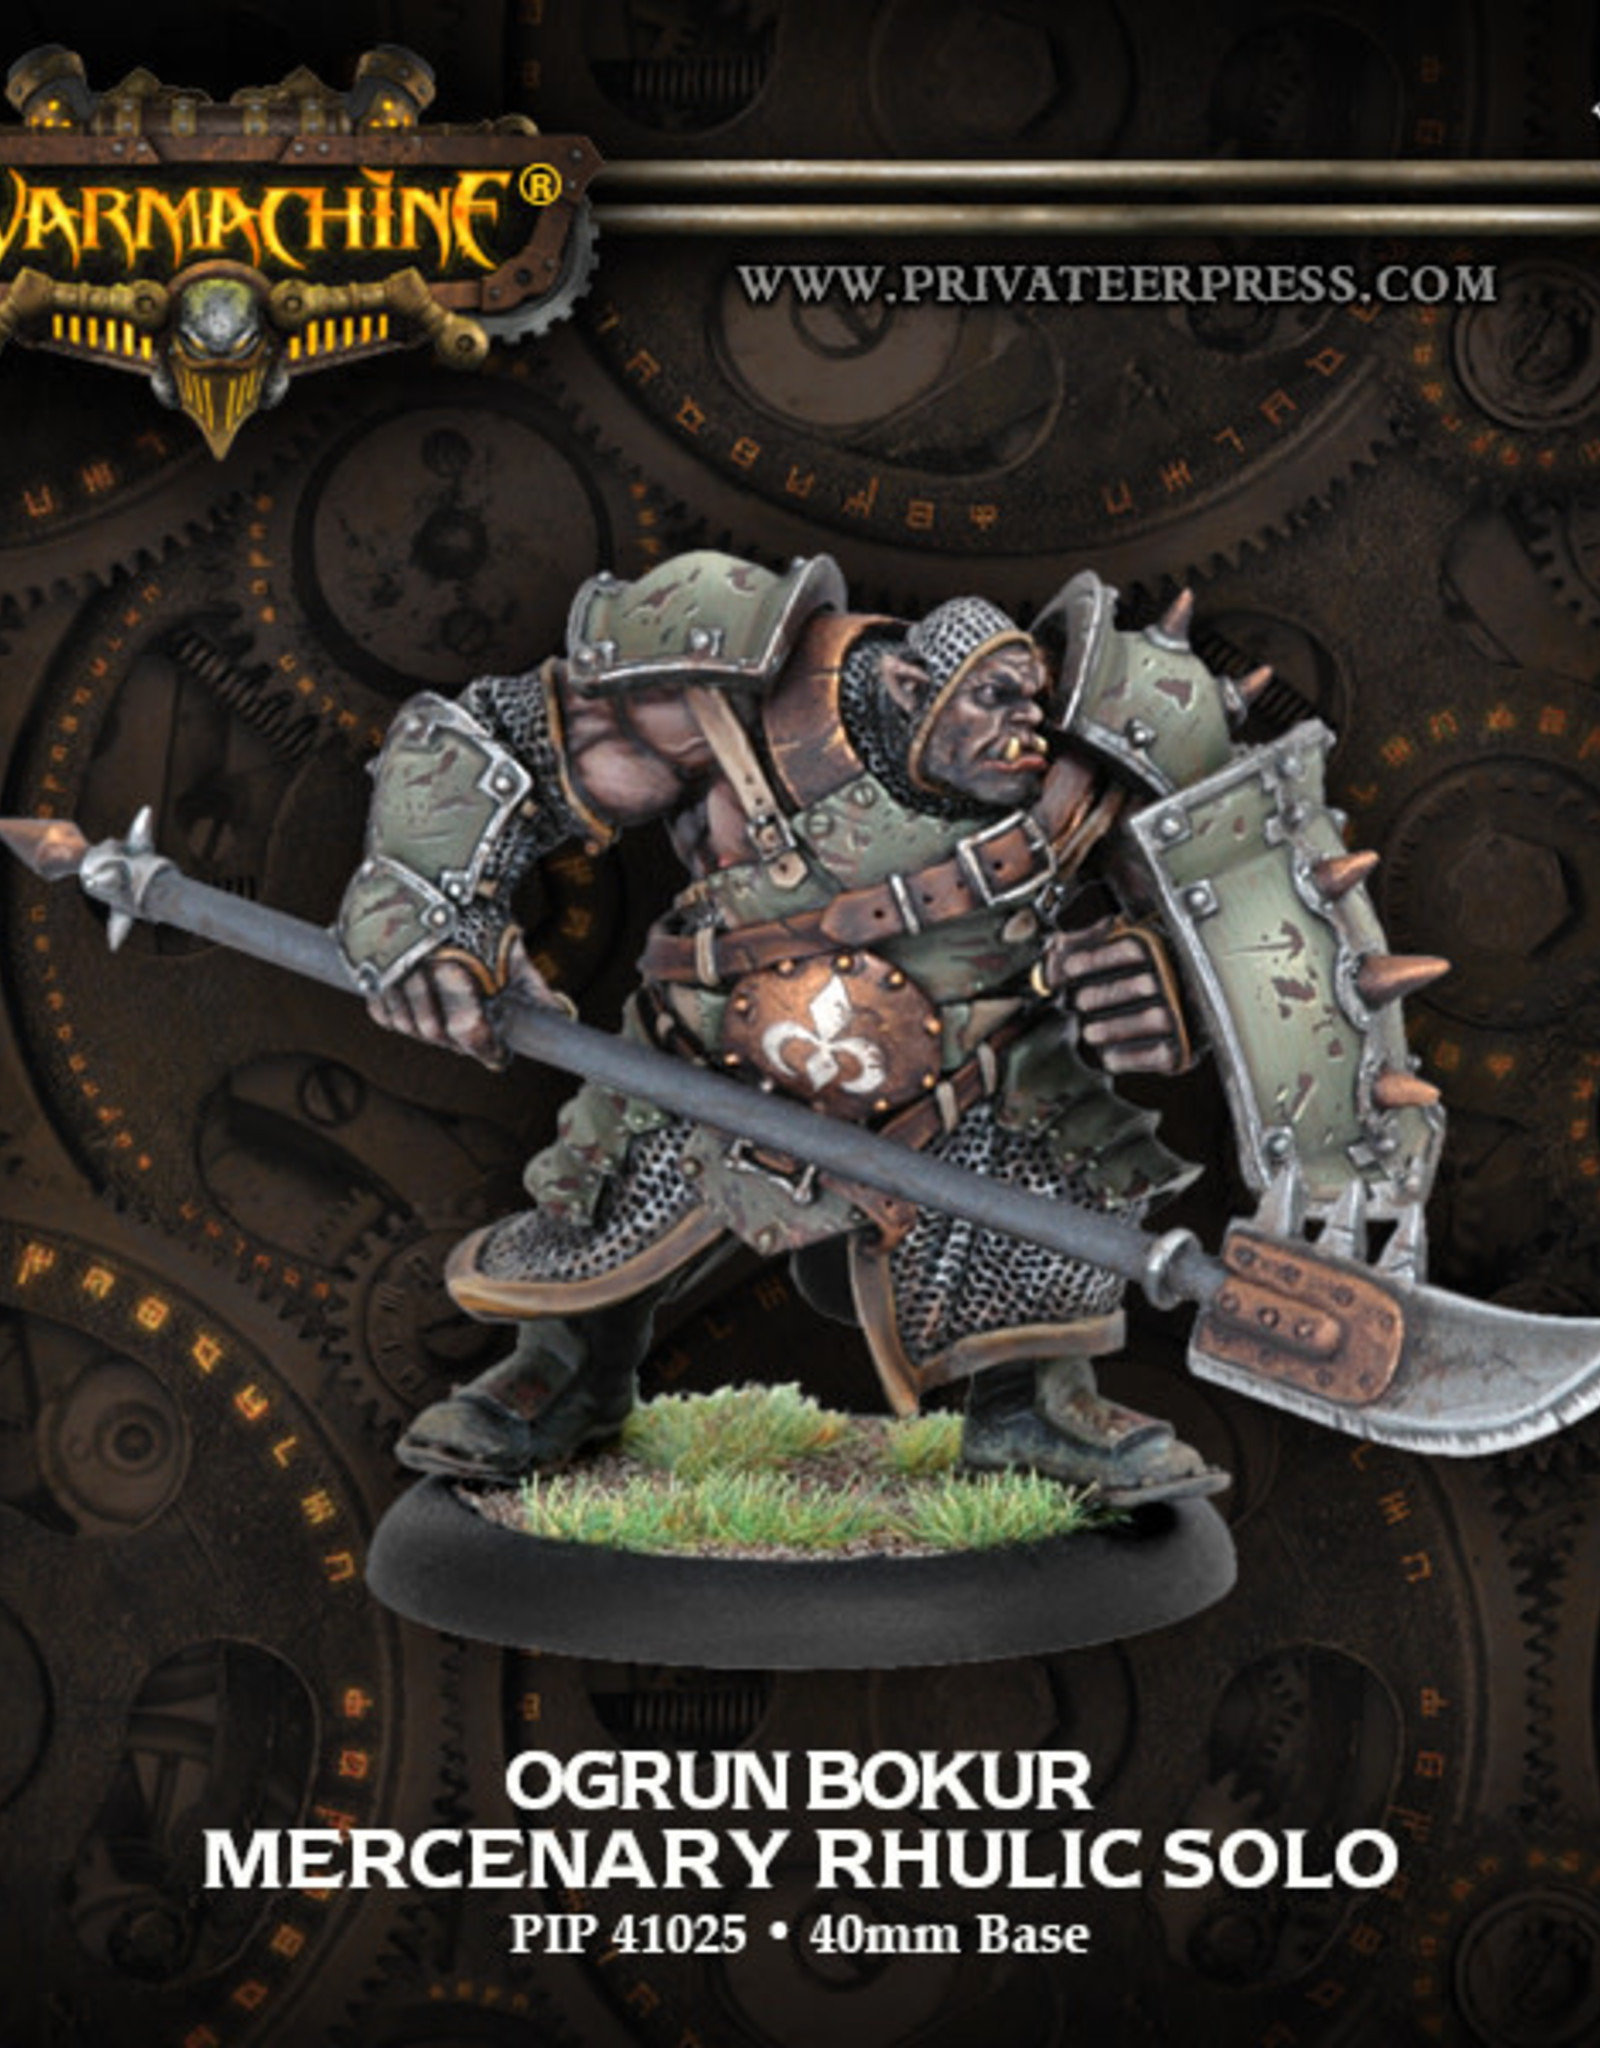 Warmachine Mercenaries - Ogrun Bokur